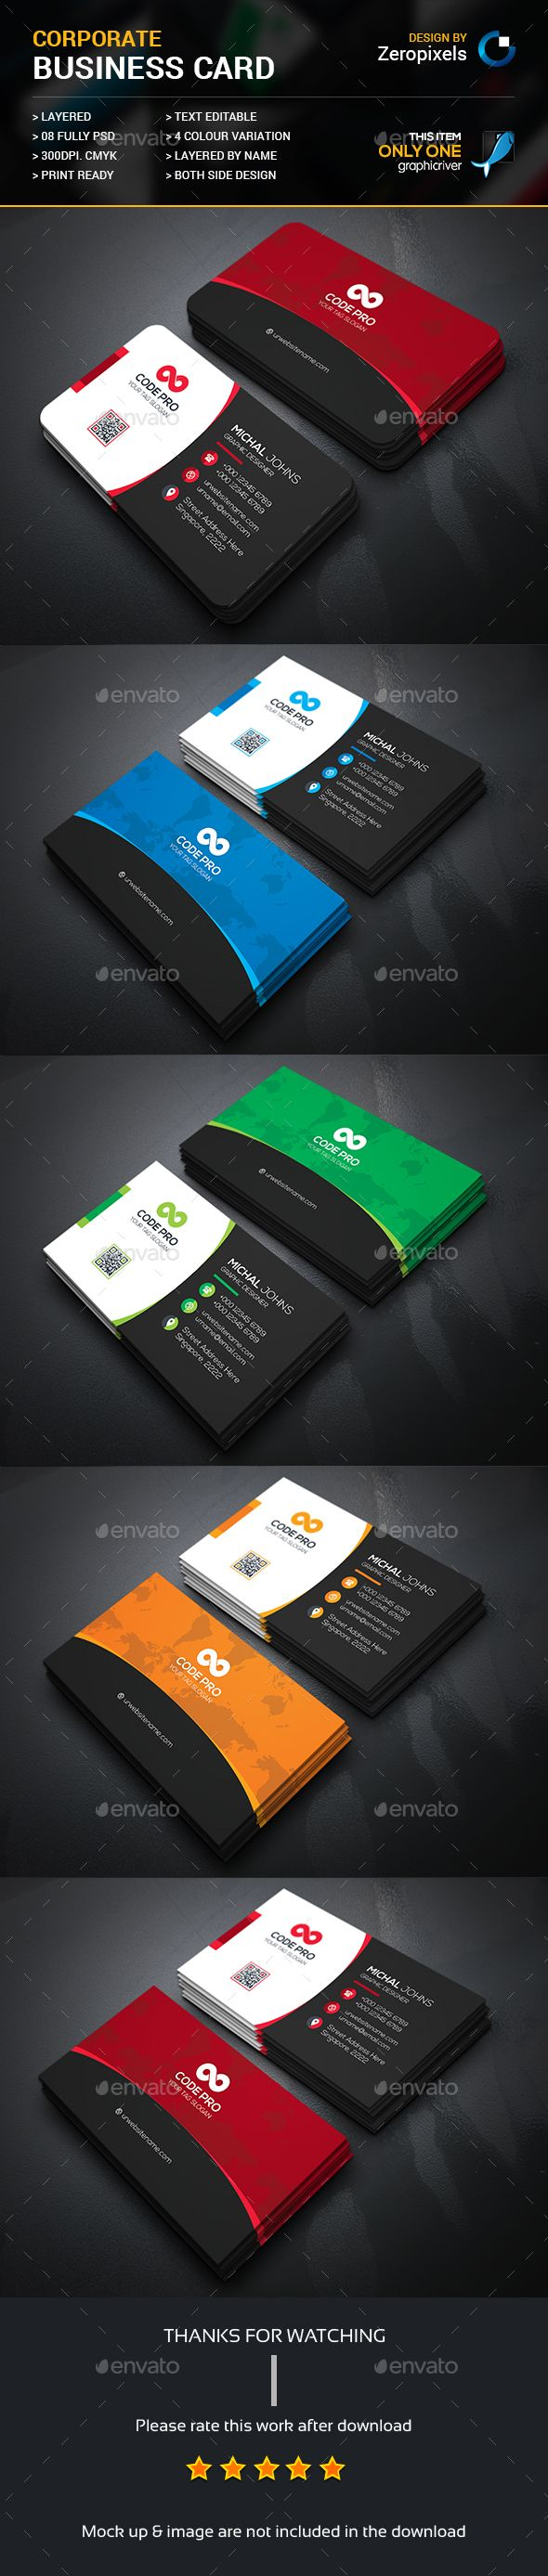 110 best Business Cards images on Pinterest | Business card design ...